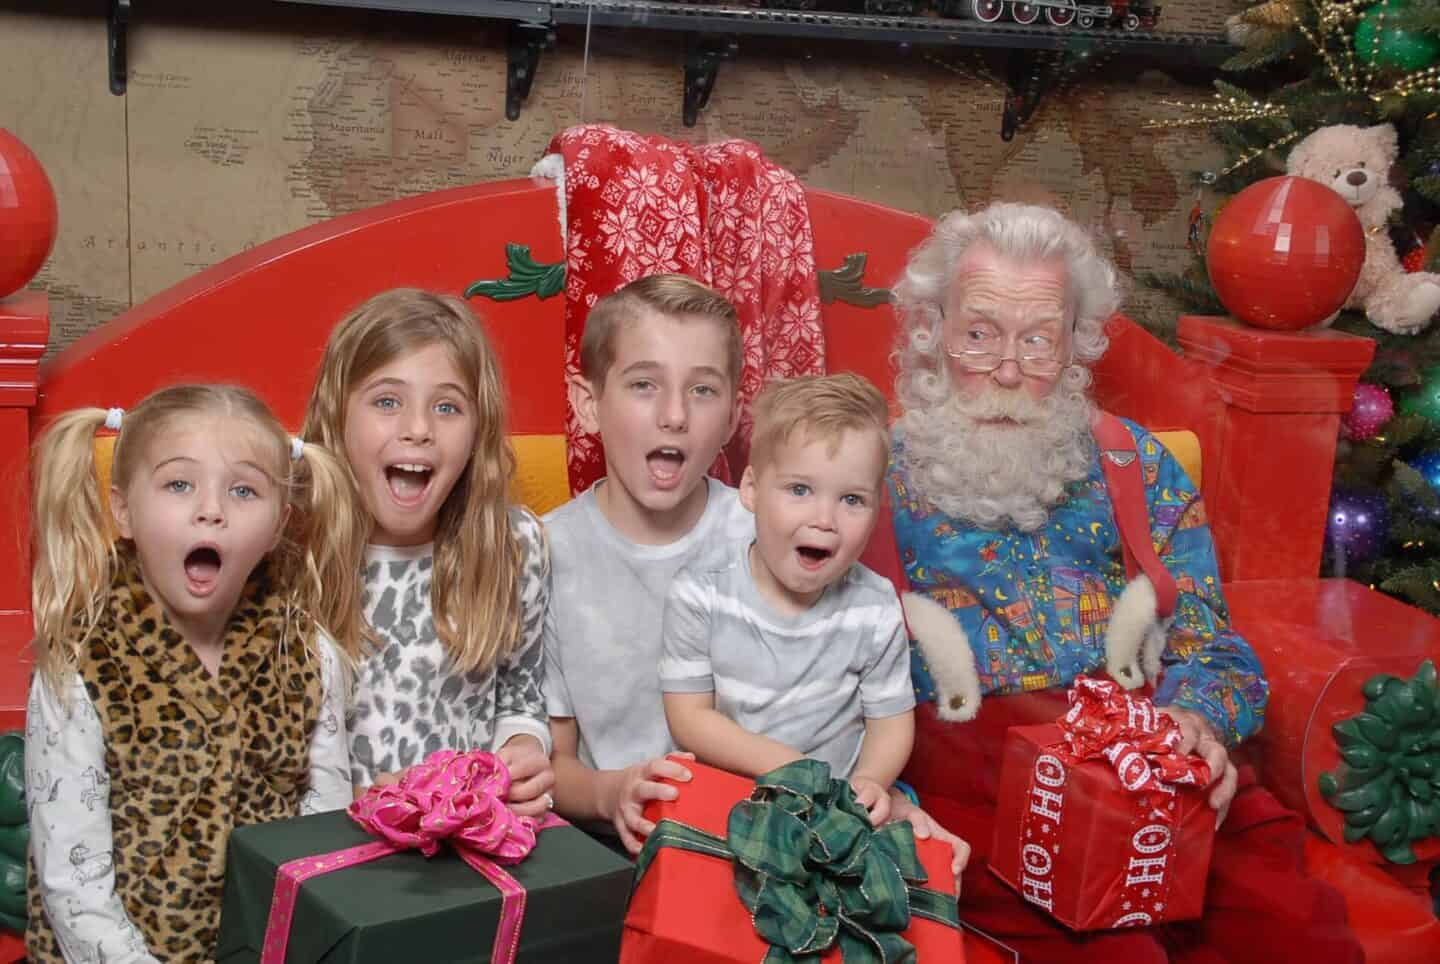 Best Place to Meet Santa for Photos: The Santa Workshop Experience at ICON Park